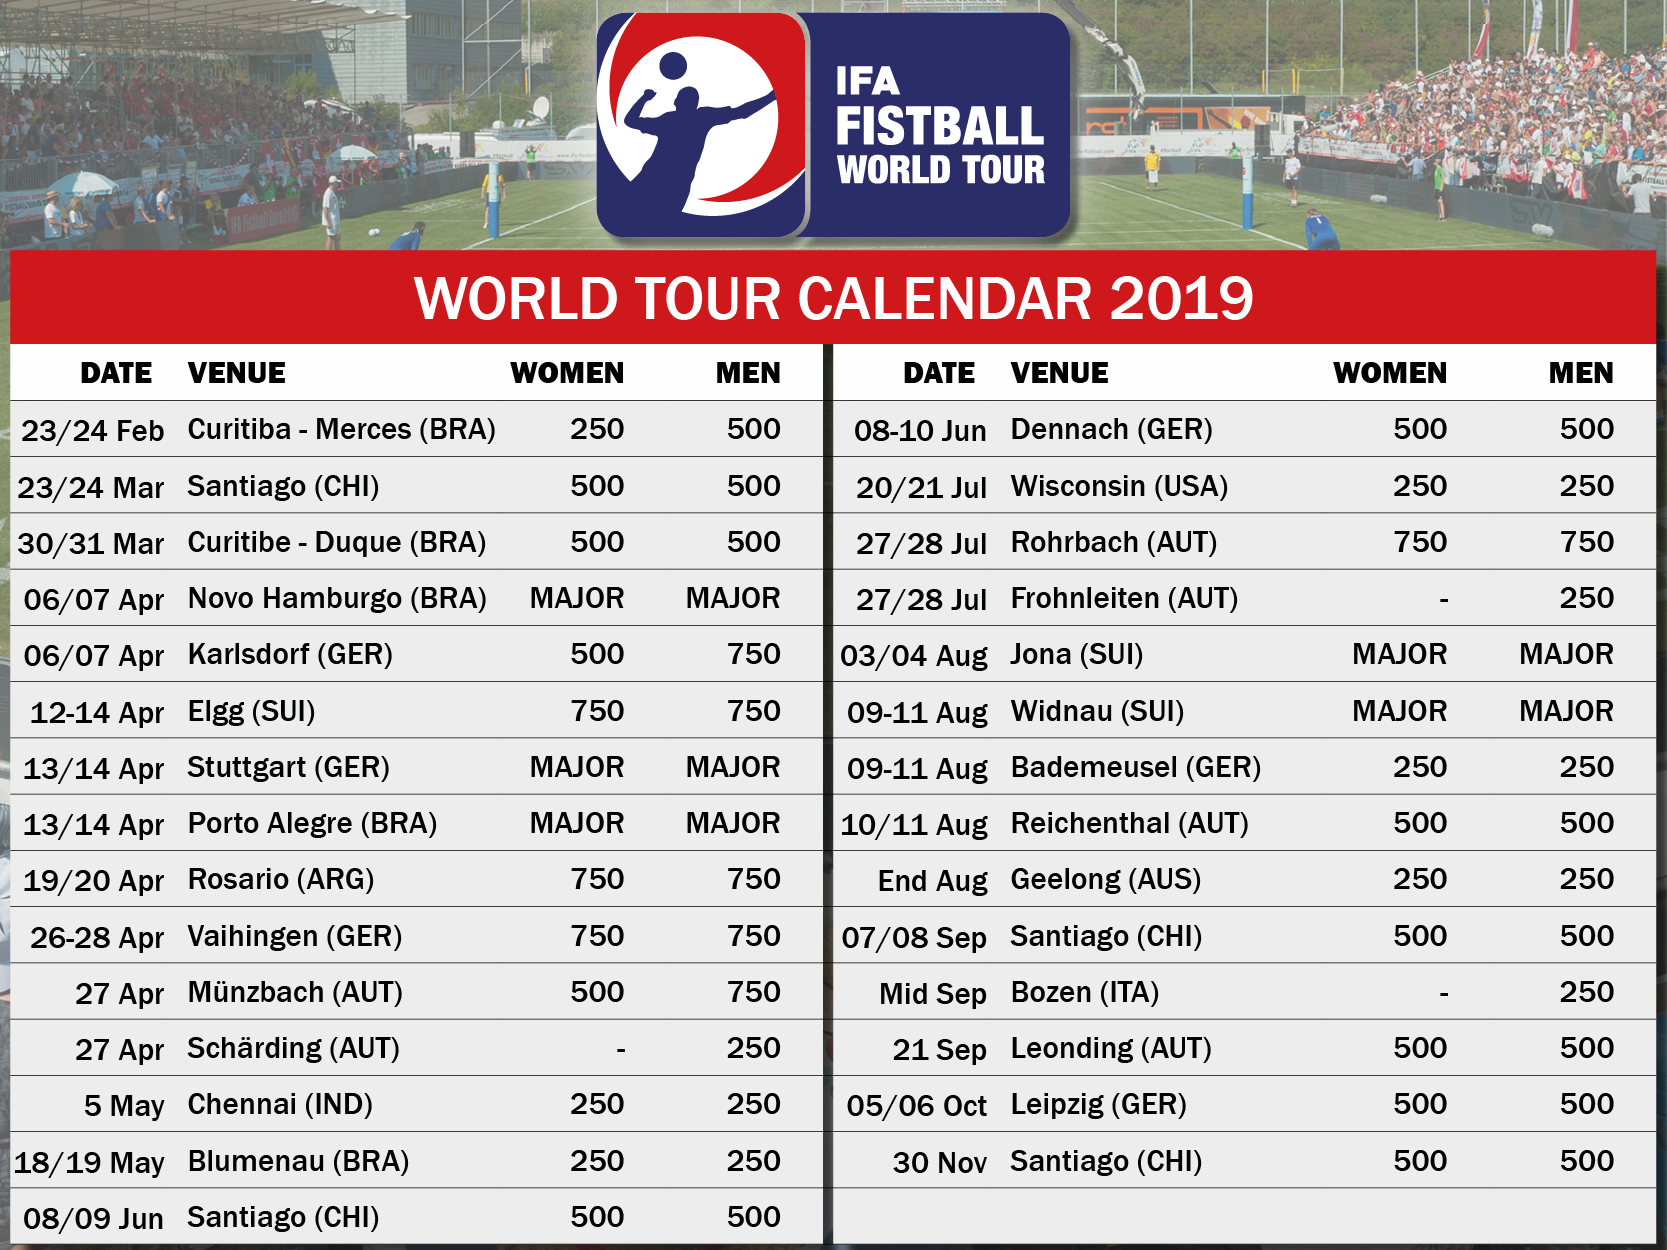 World Tour Kalender 2019